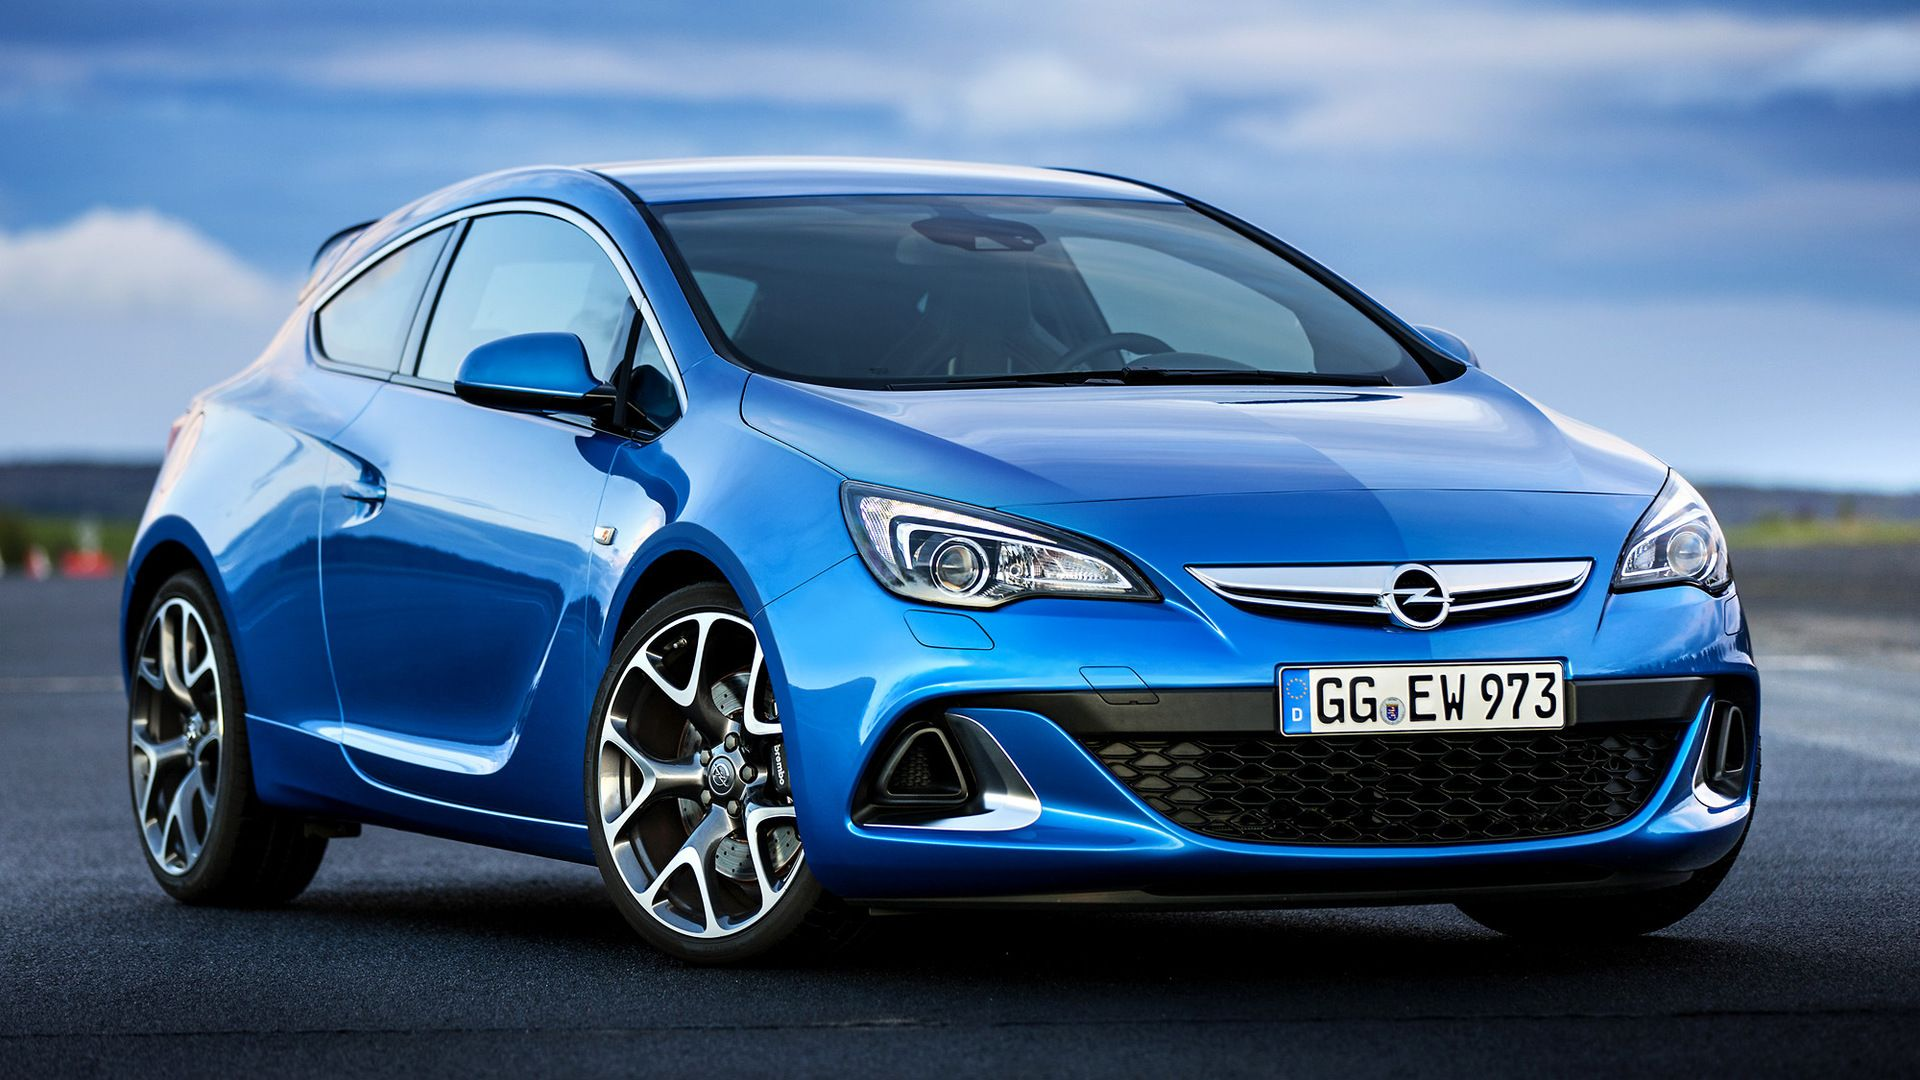 Opel Astra OPC (2011) Wallpapers and HD Images - Car Pixel